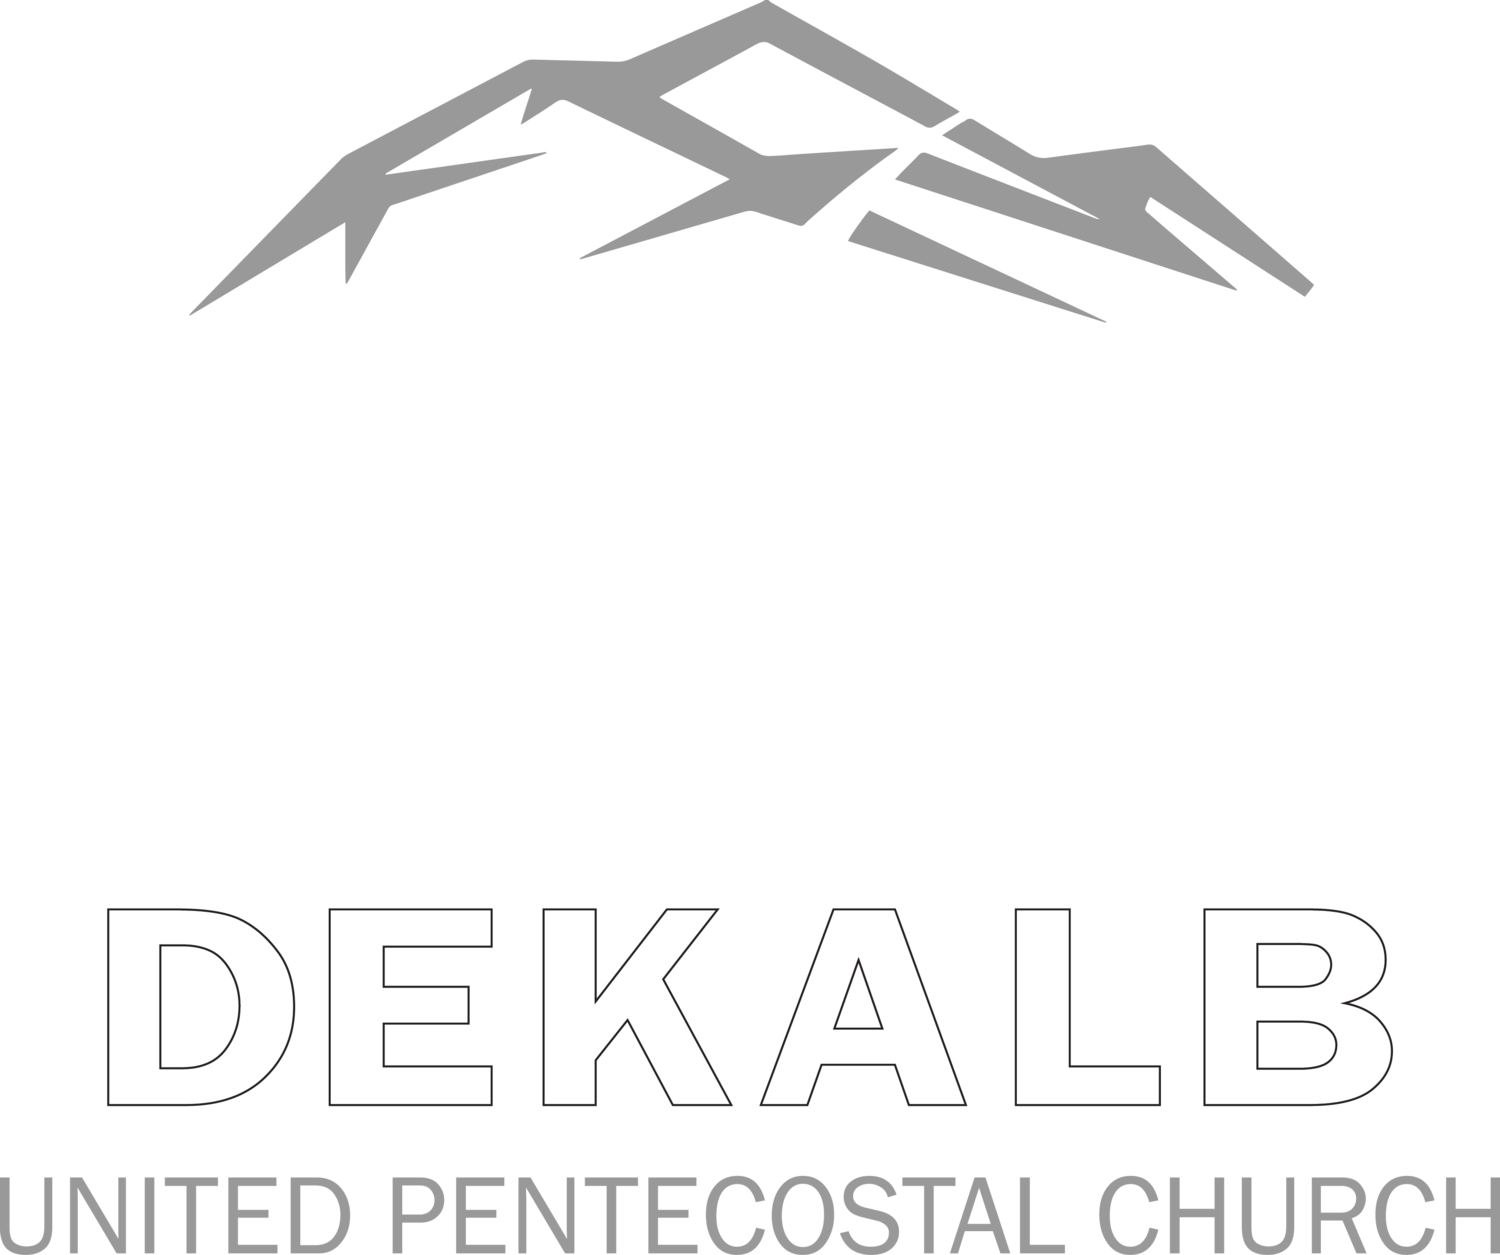 DeKalb United Pentecostal Church